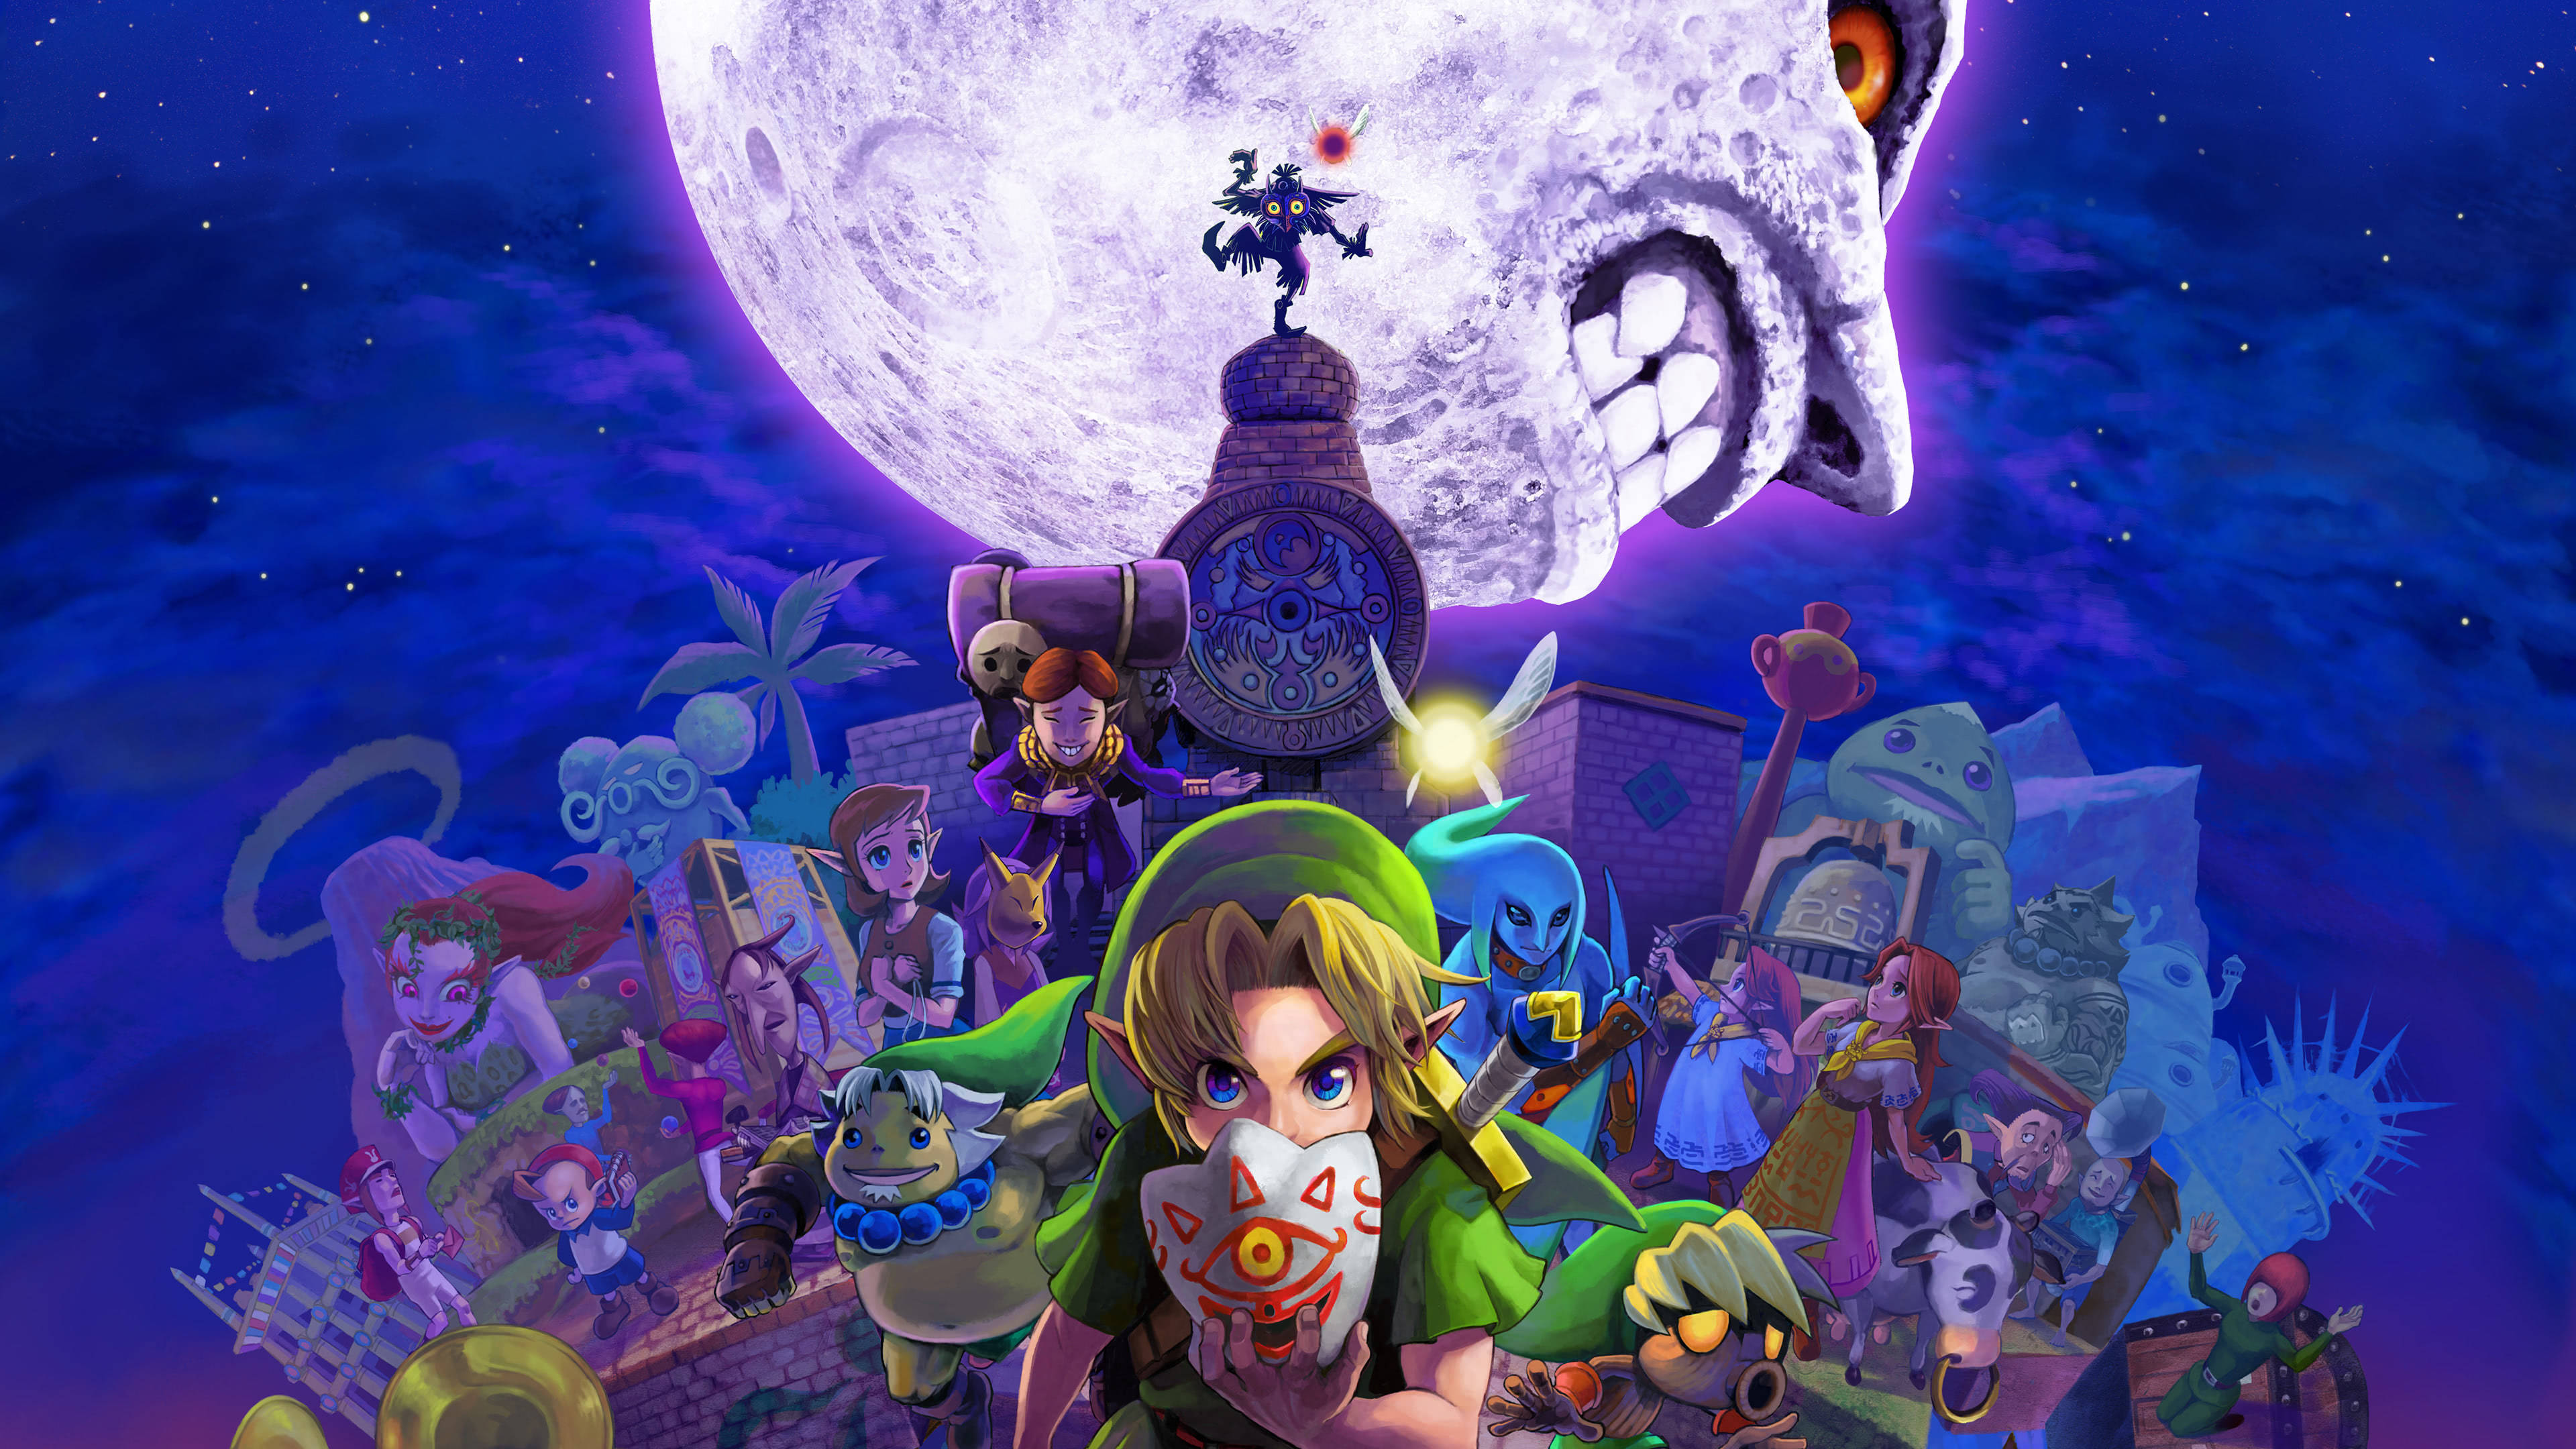 legend of zelda majoras mask 4k wallpaper